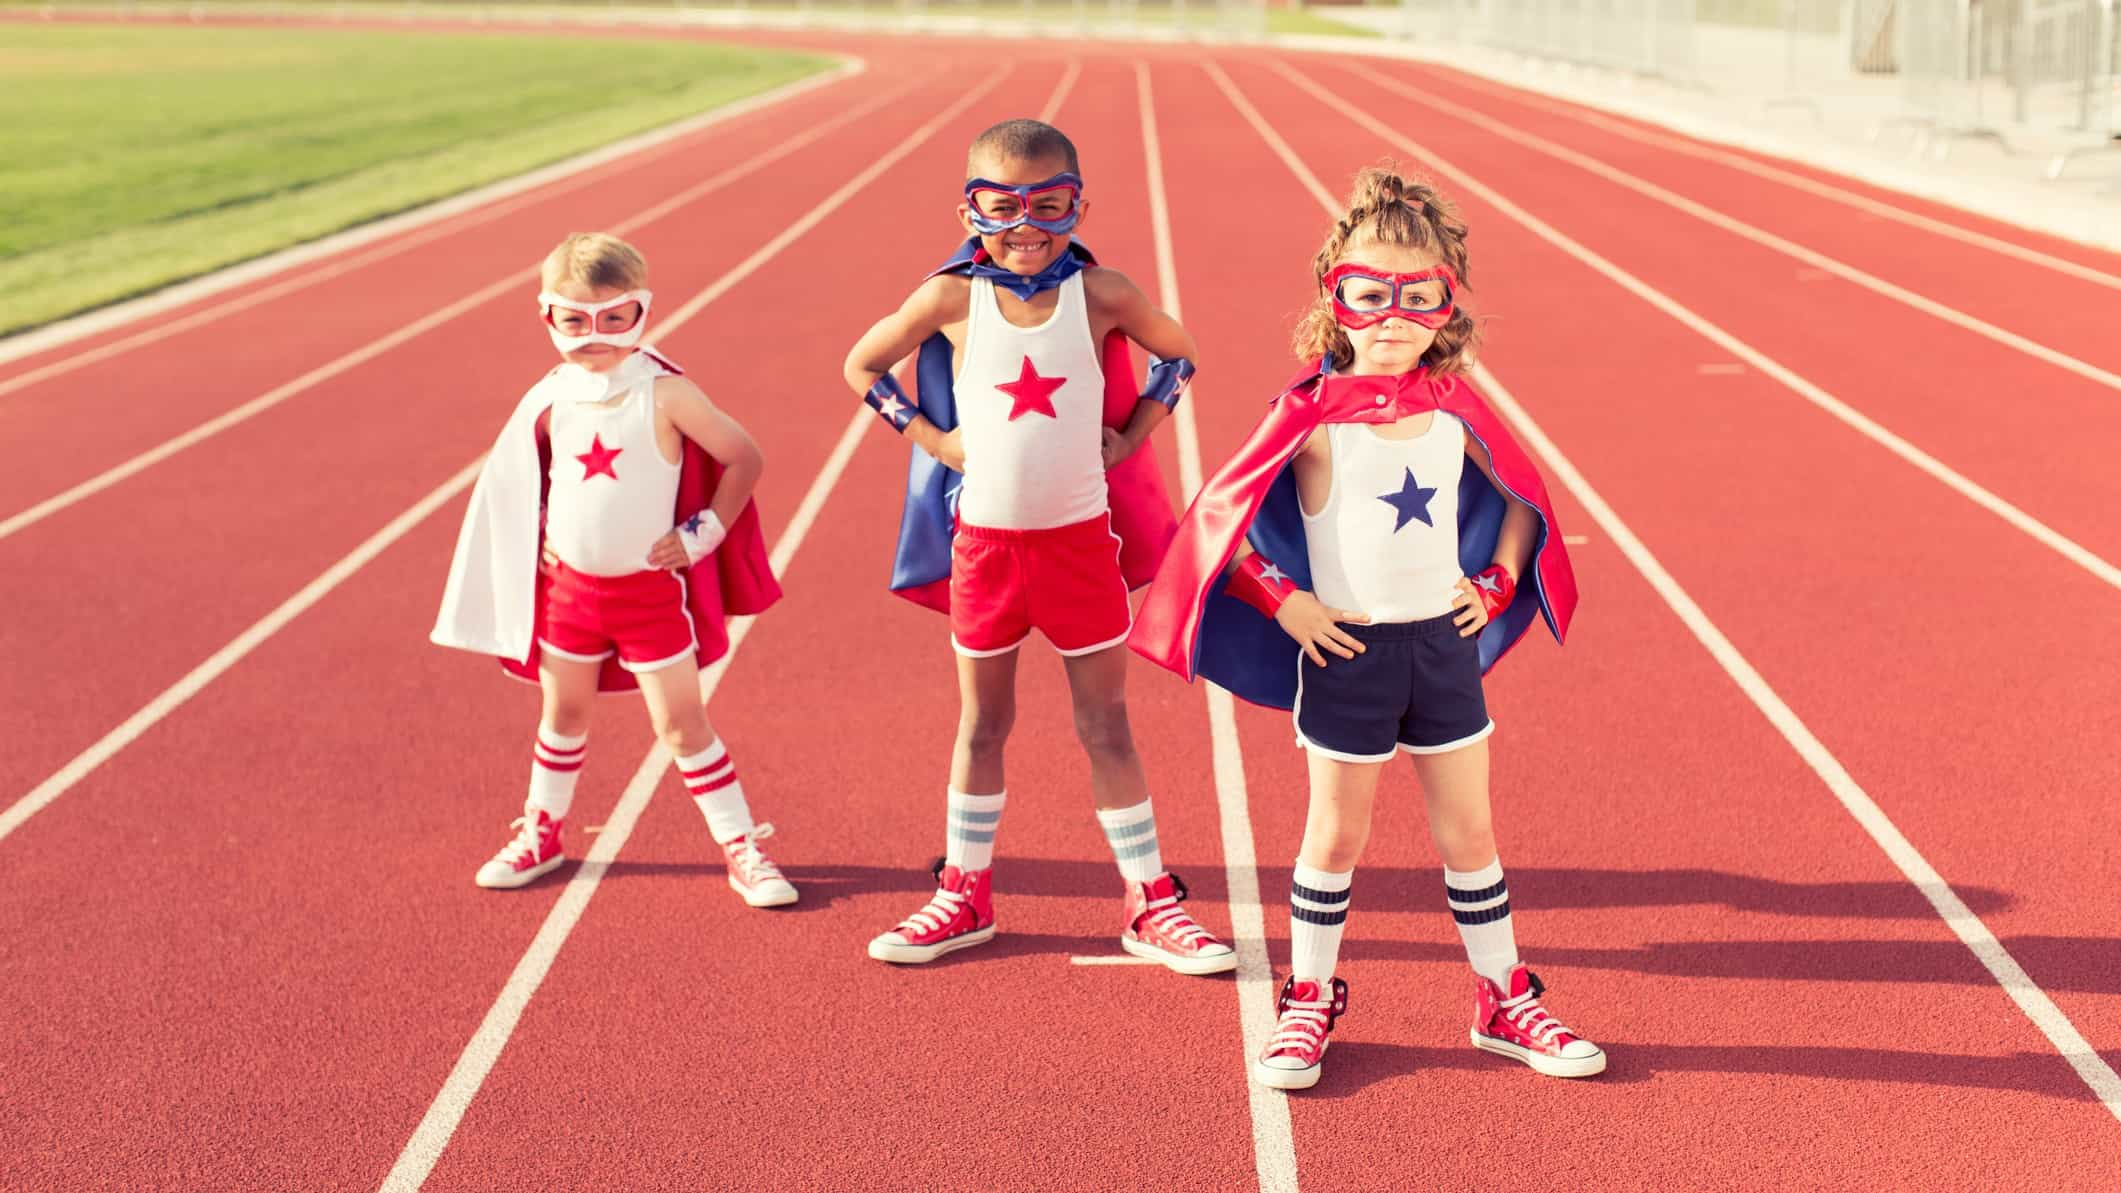 three children wearing superhero costumes, complete with masks, pose with hands on hips wearing capes and sneakers on a running track.